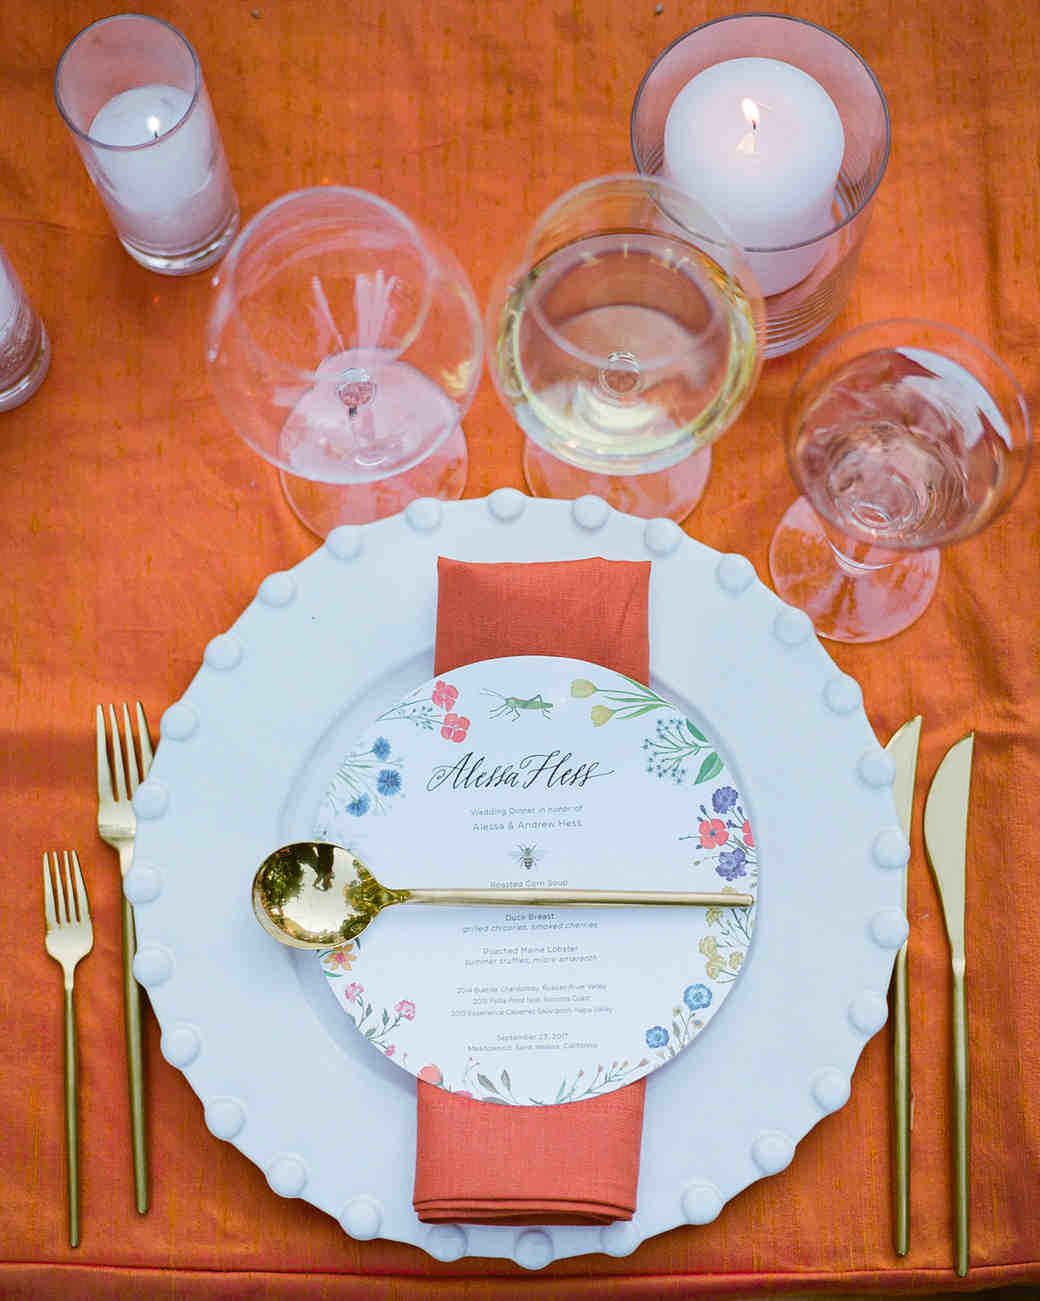 alessa andrew wedding placesetting